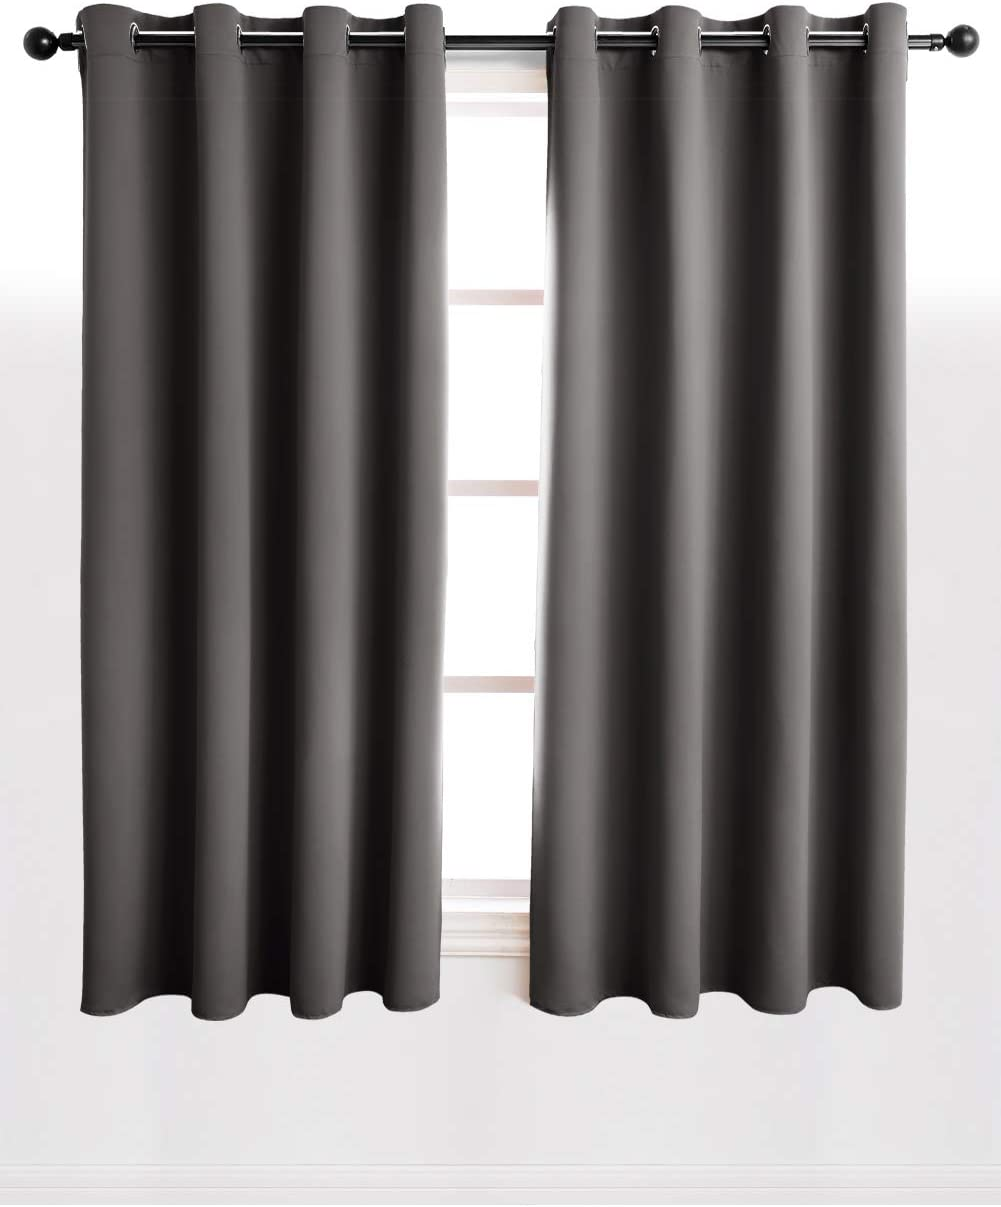 Kinryb Blackout Curtains Panels with Grommets , Room Darkening Thermal Insulated Drapes for Living Room and Bedroom (Set of 2 Panels , 52 by 45 Inches , Grey)